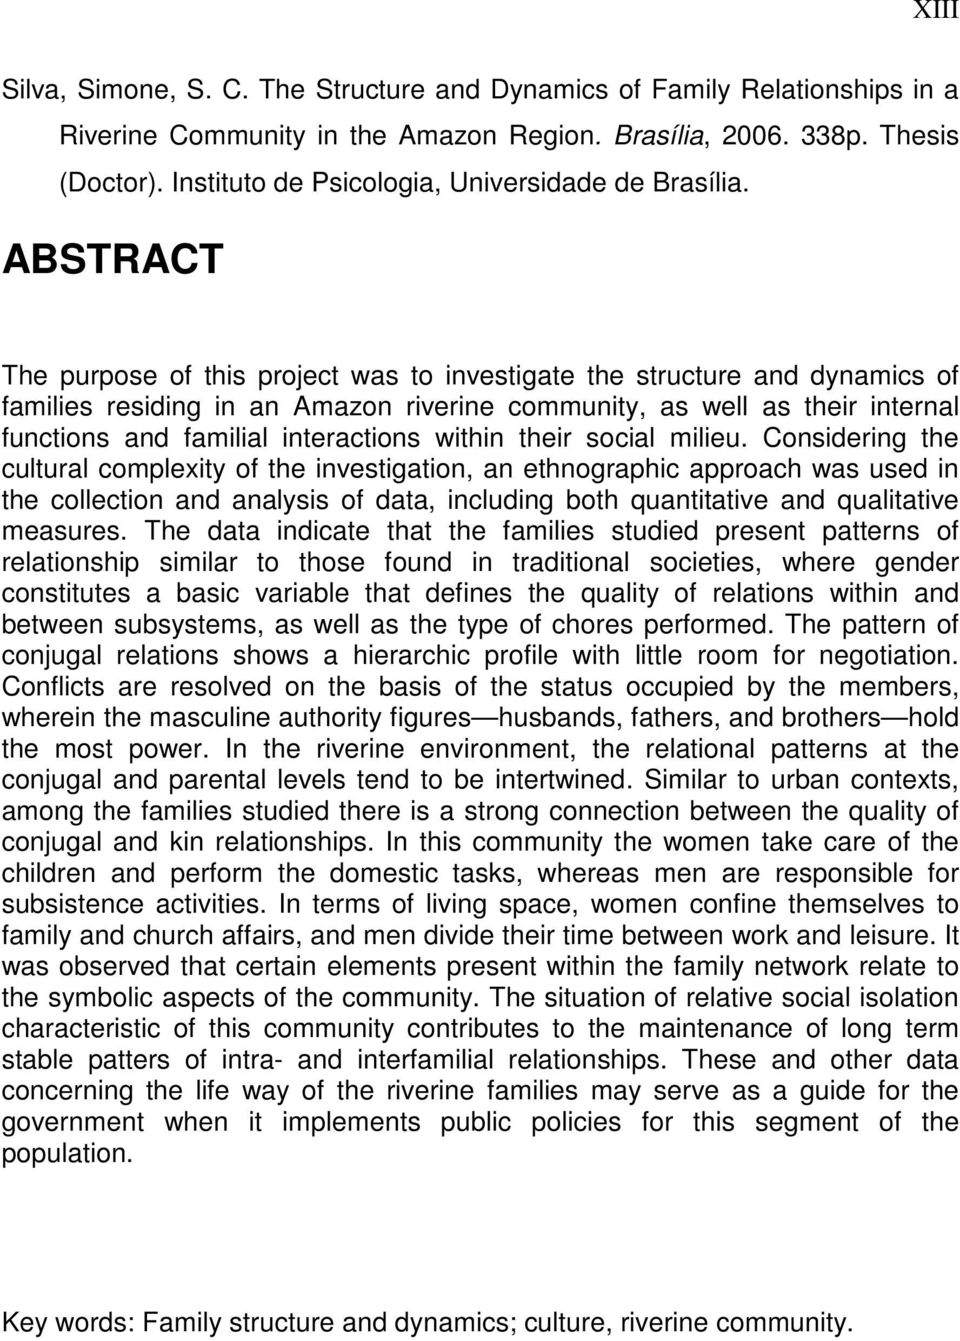 ABSTRACT The purpose of this project was to investigate the structure and dynamics of families residing in an Amazon riverine community, as well as their internal functions and familial interactions